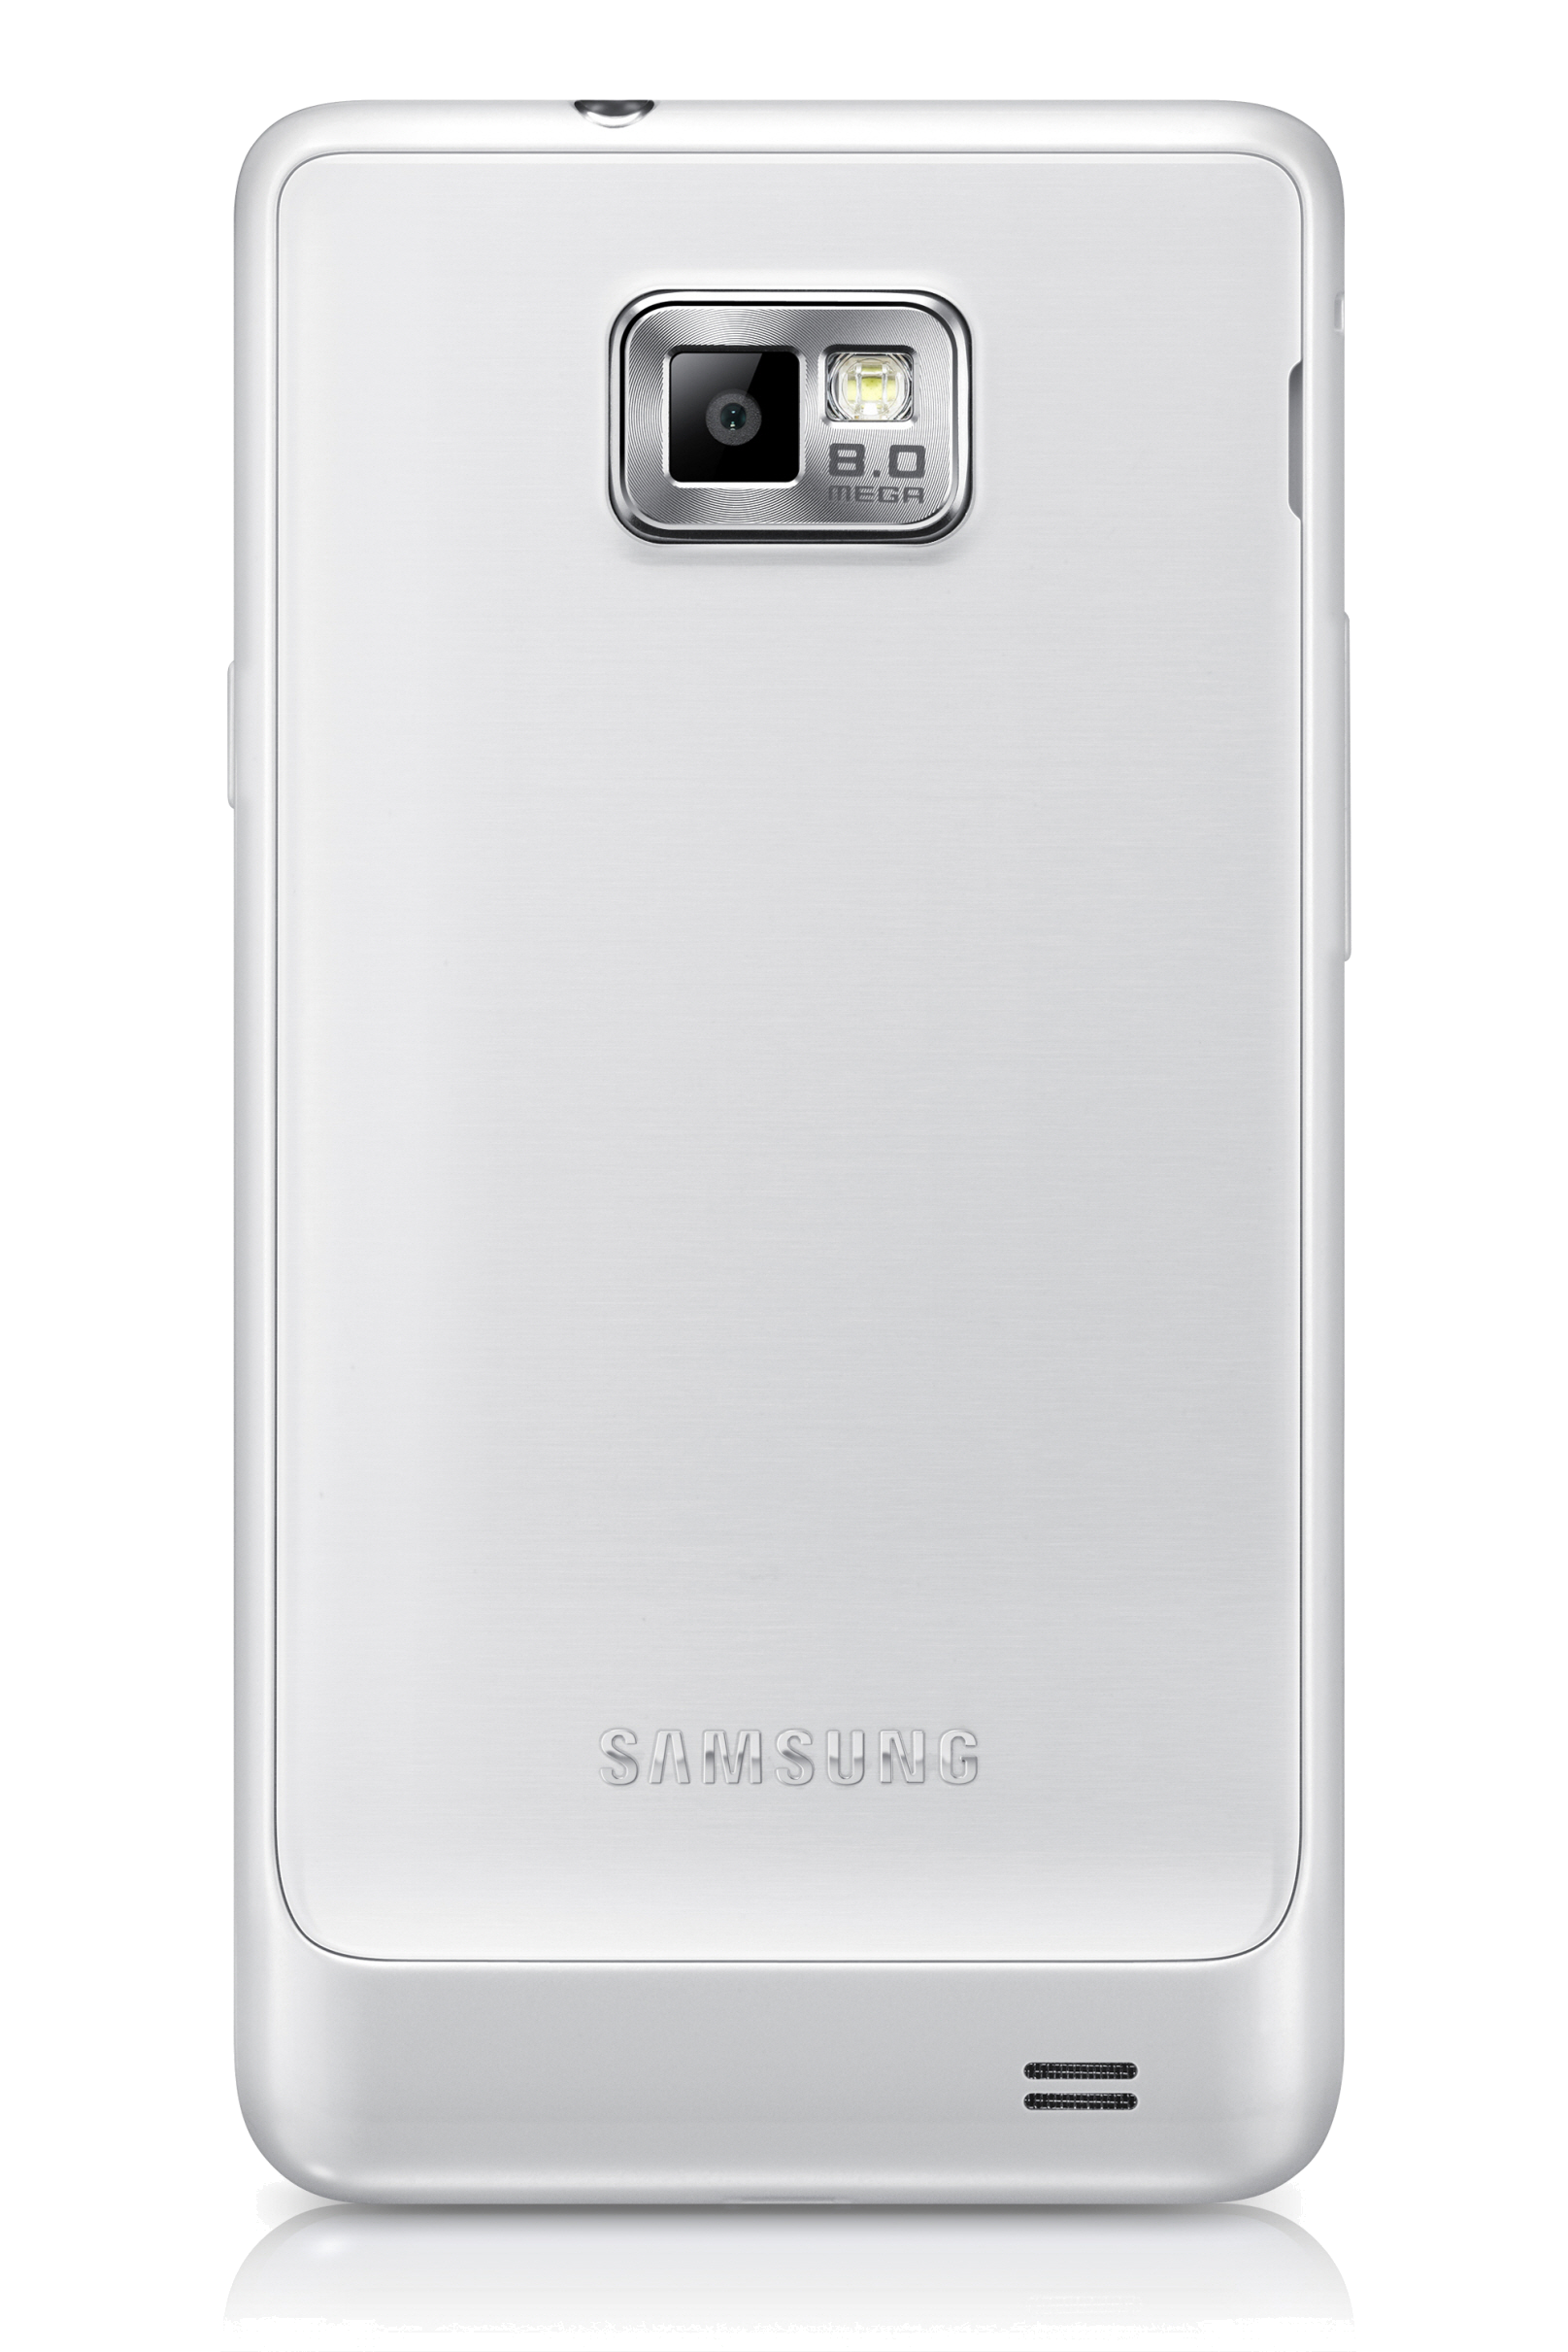 Samsung Galaxy S II Plus White